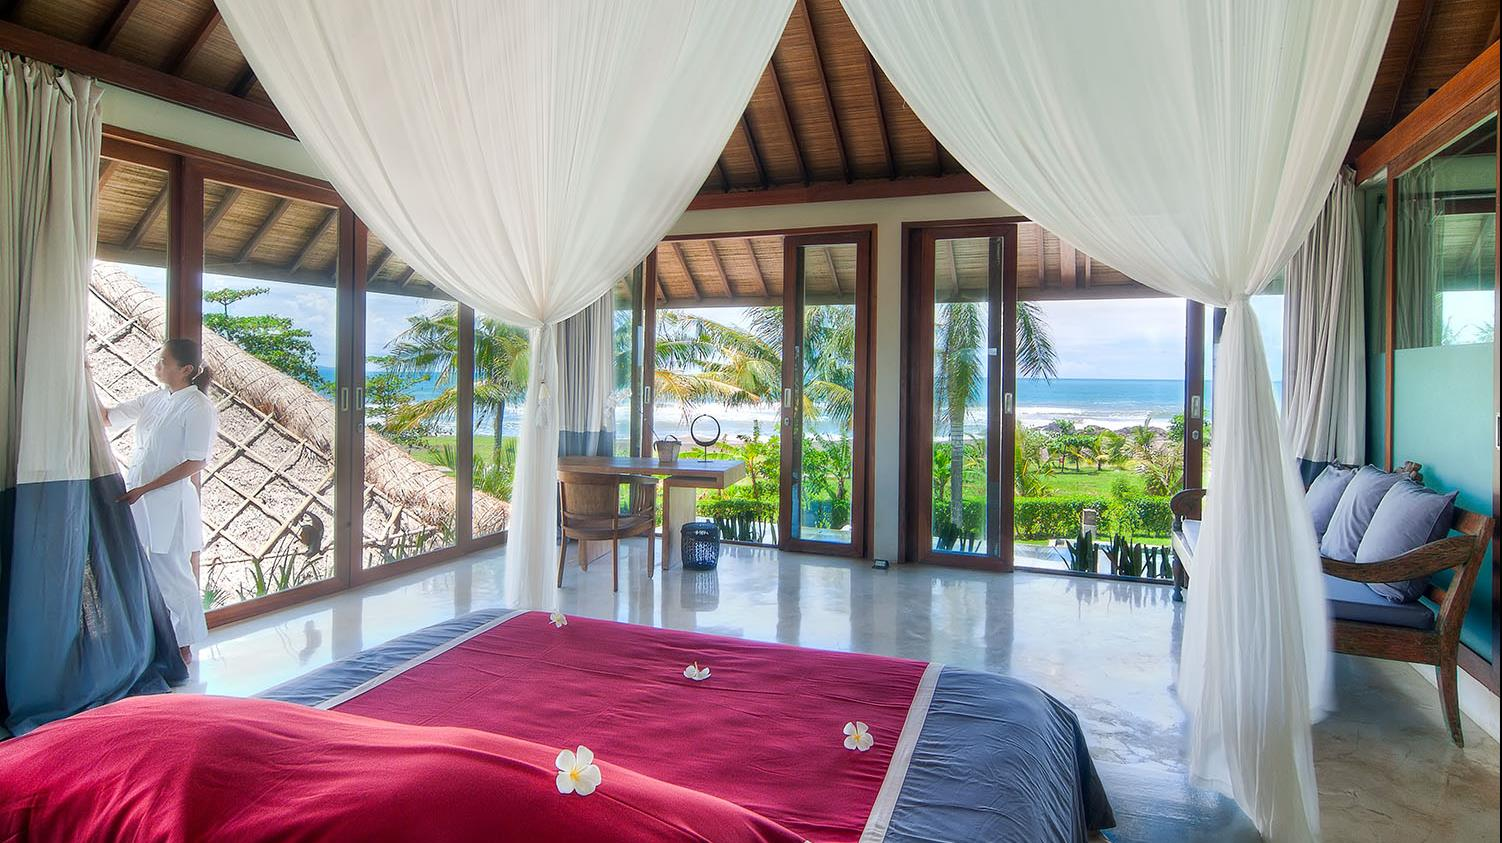 Bedroom with Sea View - Shalimar Villas - Seseh, Bali